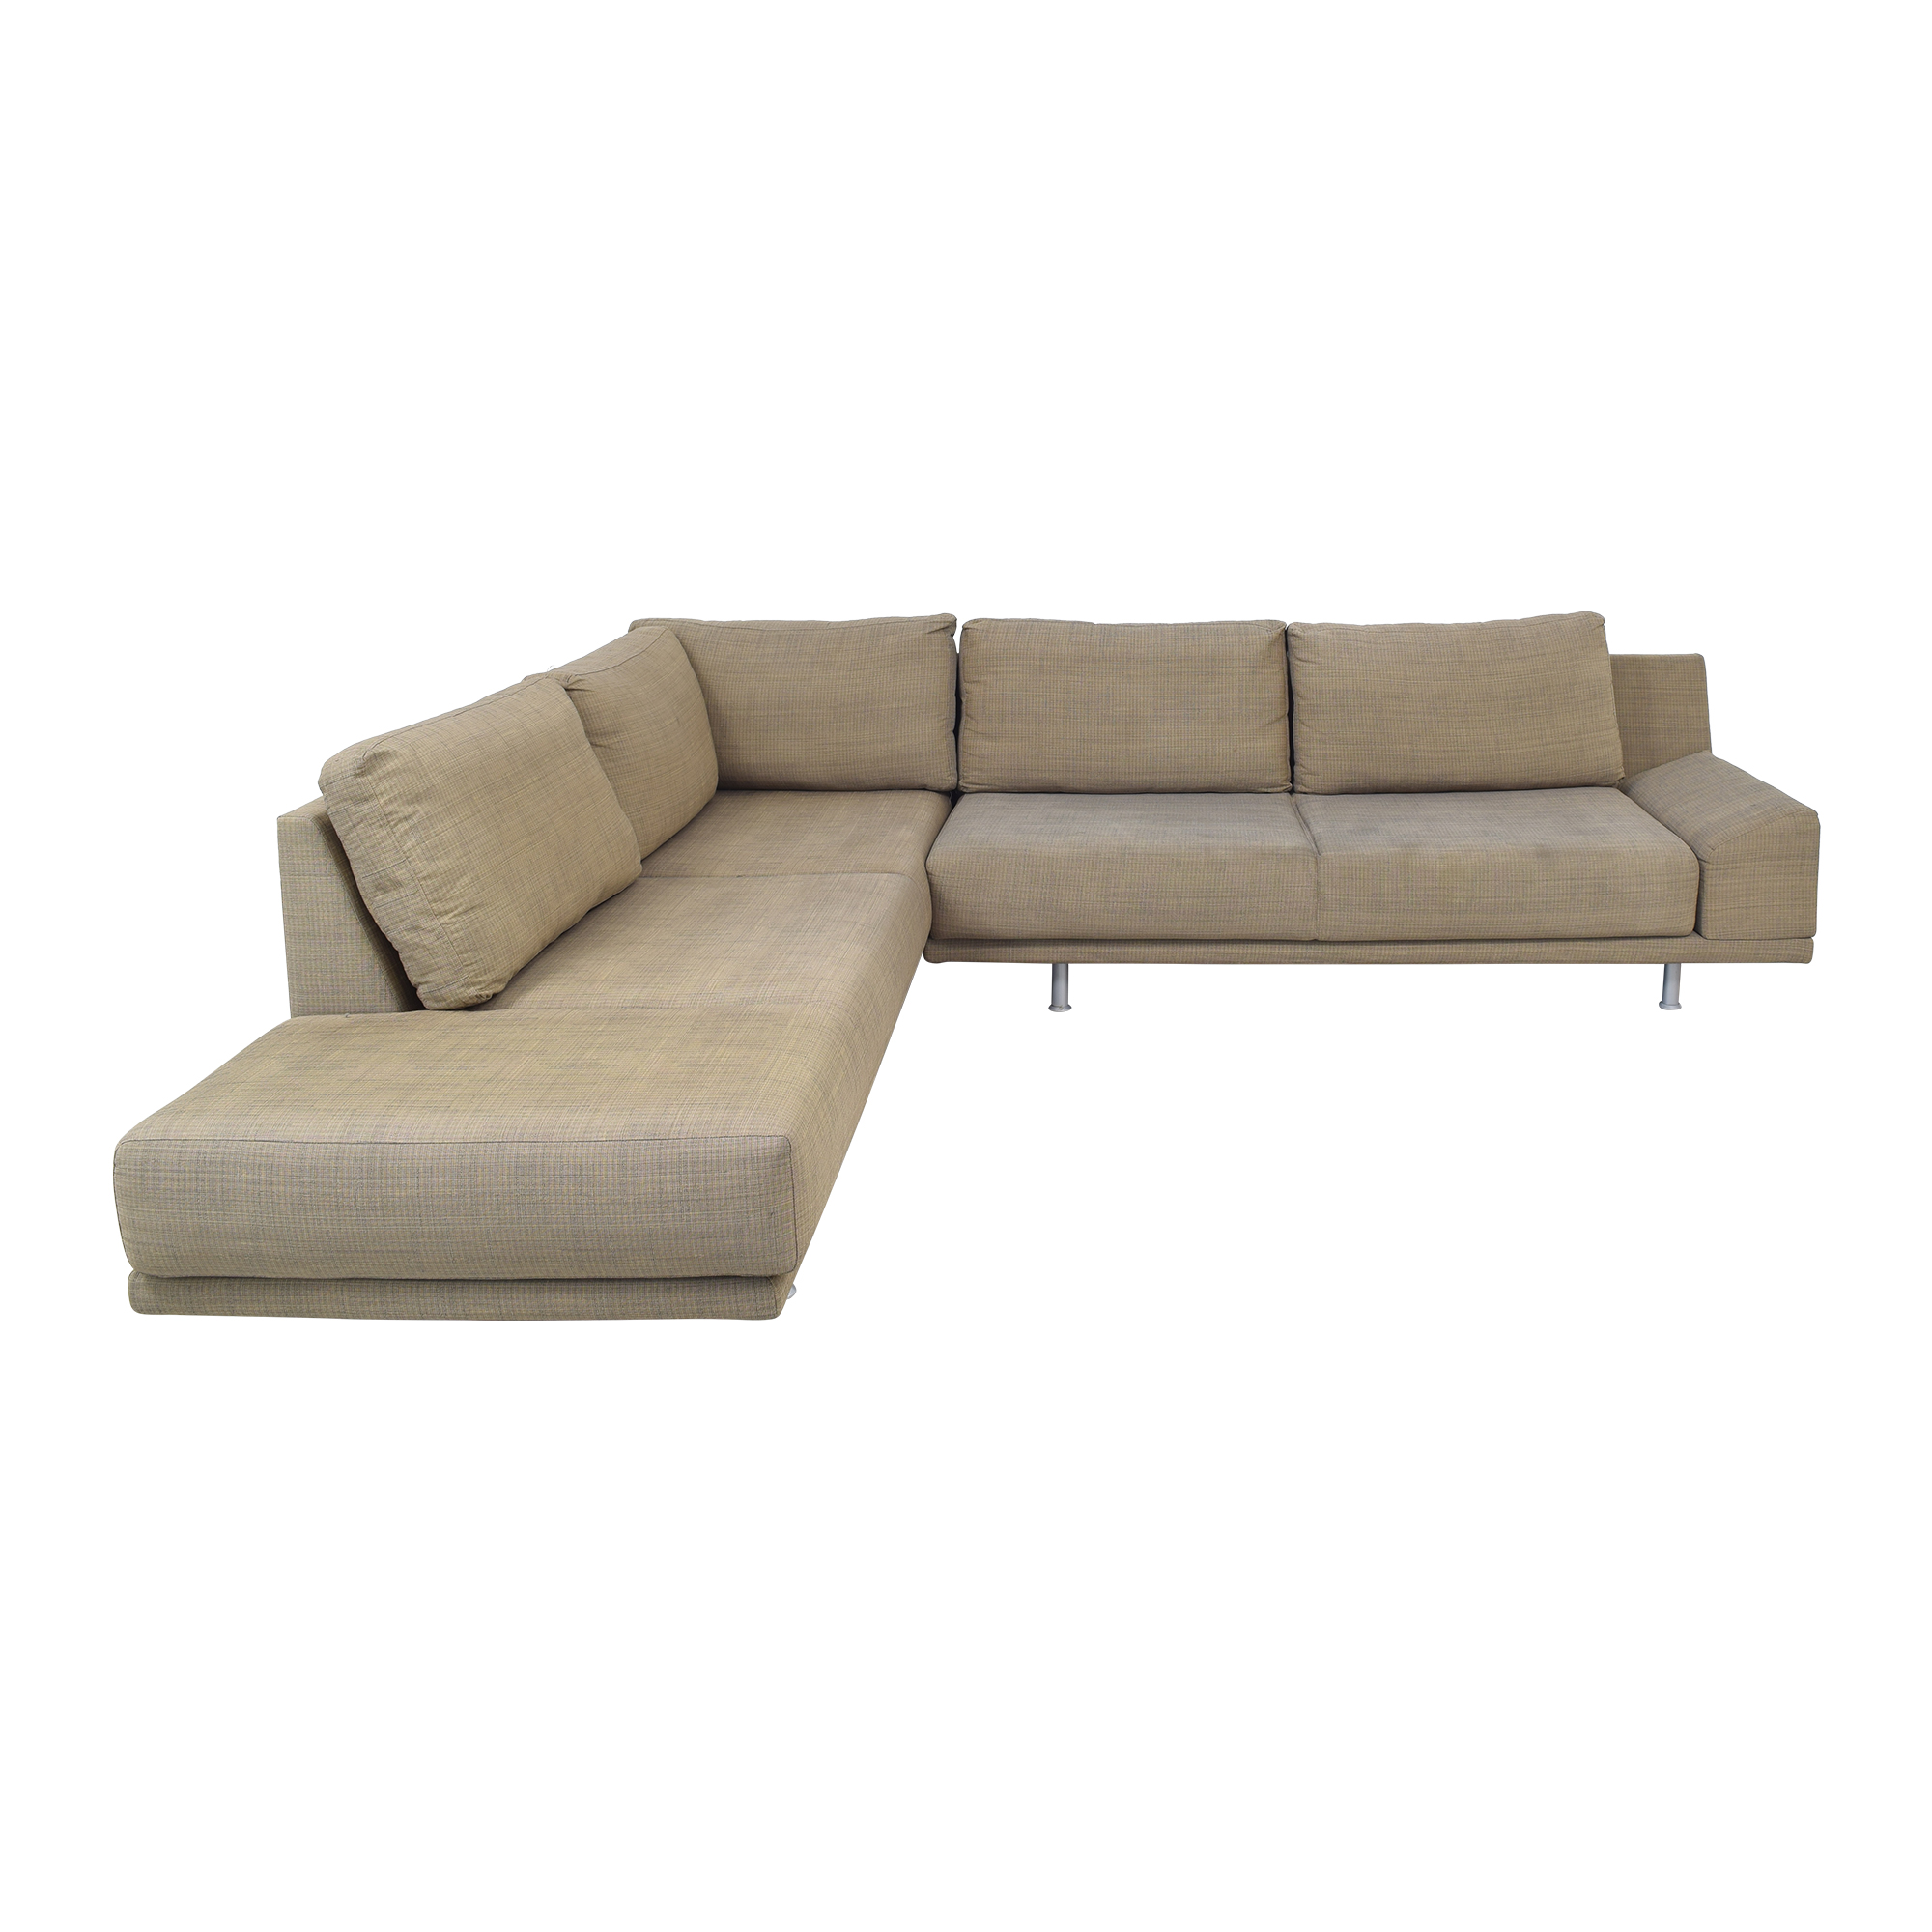 shop BoConcept BoConcept Sectional Sofa online